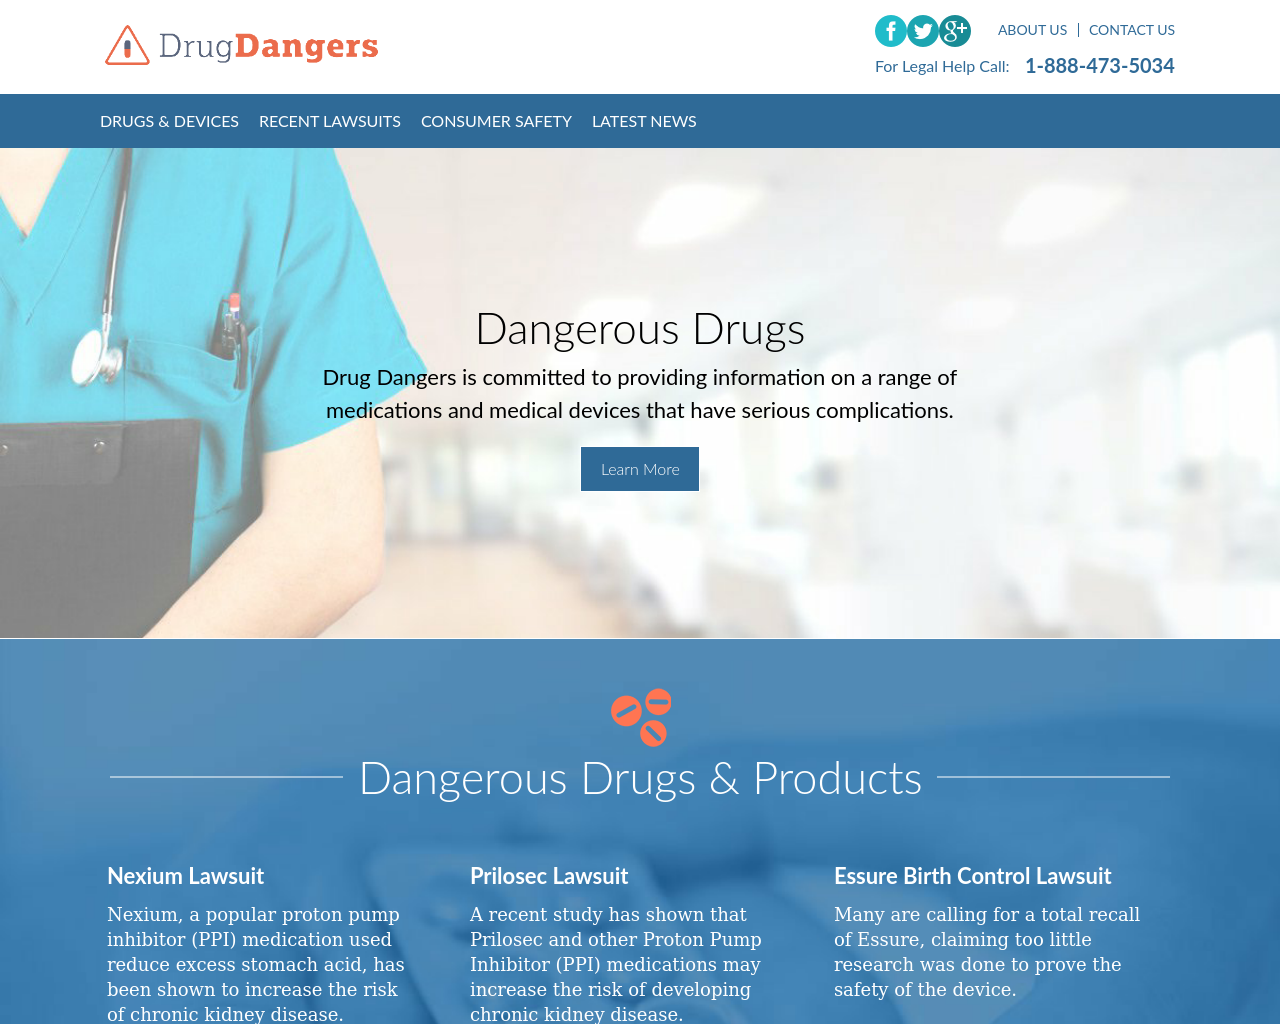 DrugDangers-Advertising-Reviews-Pricing